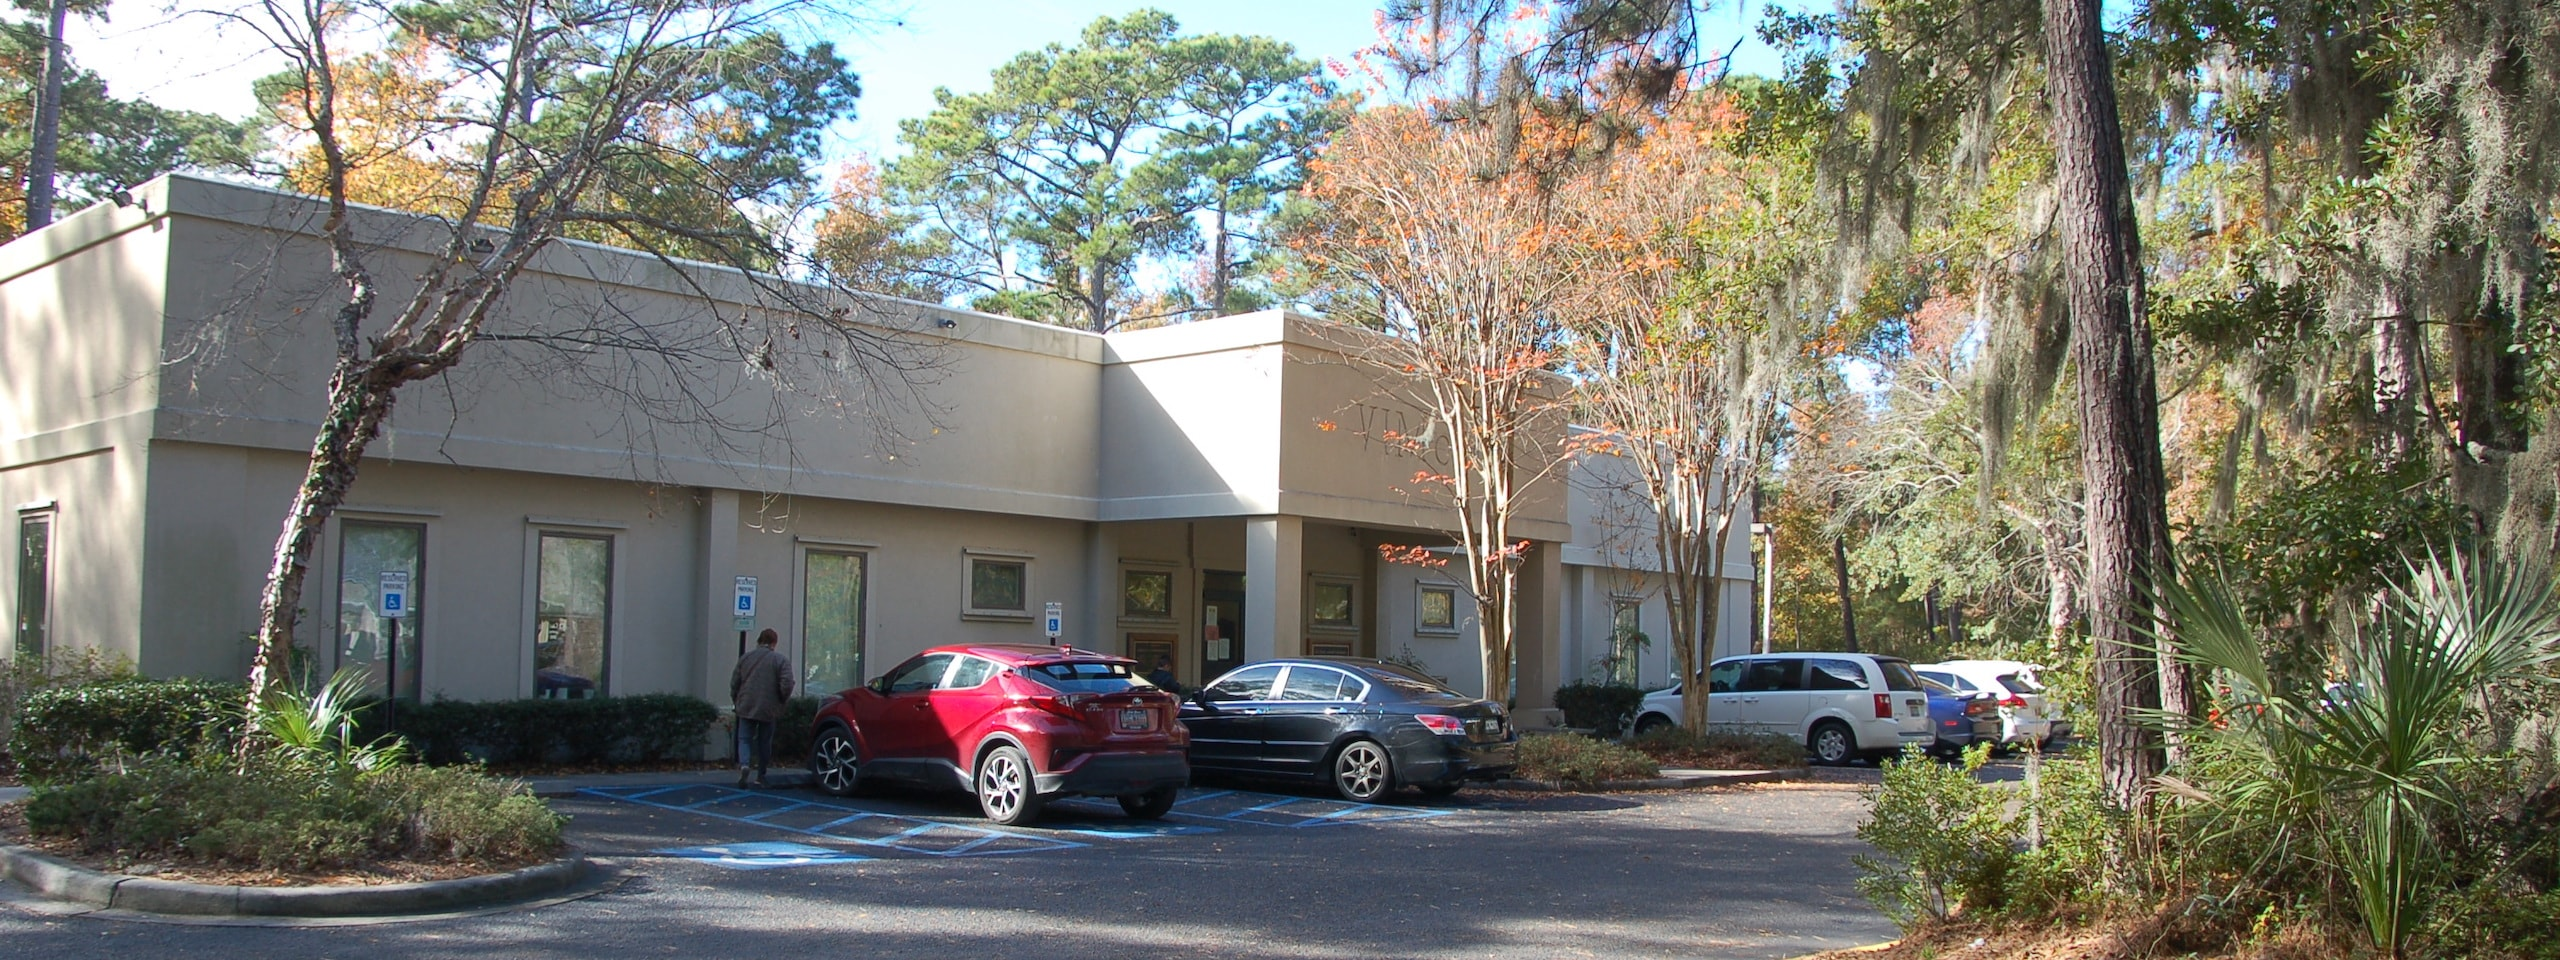 VIM Clinic HHI Location